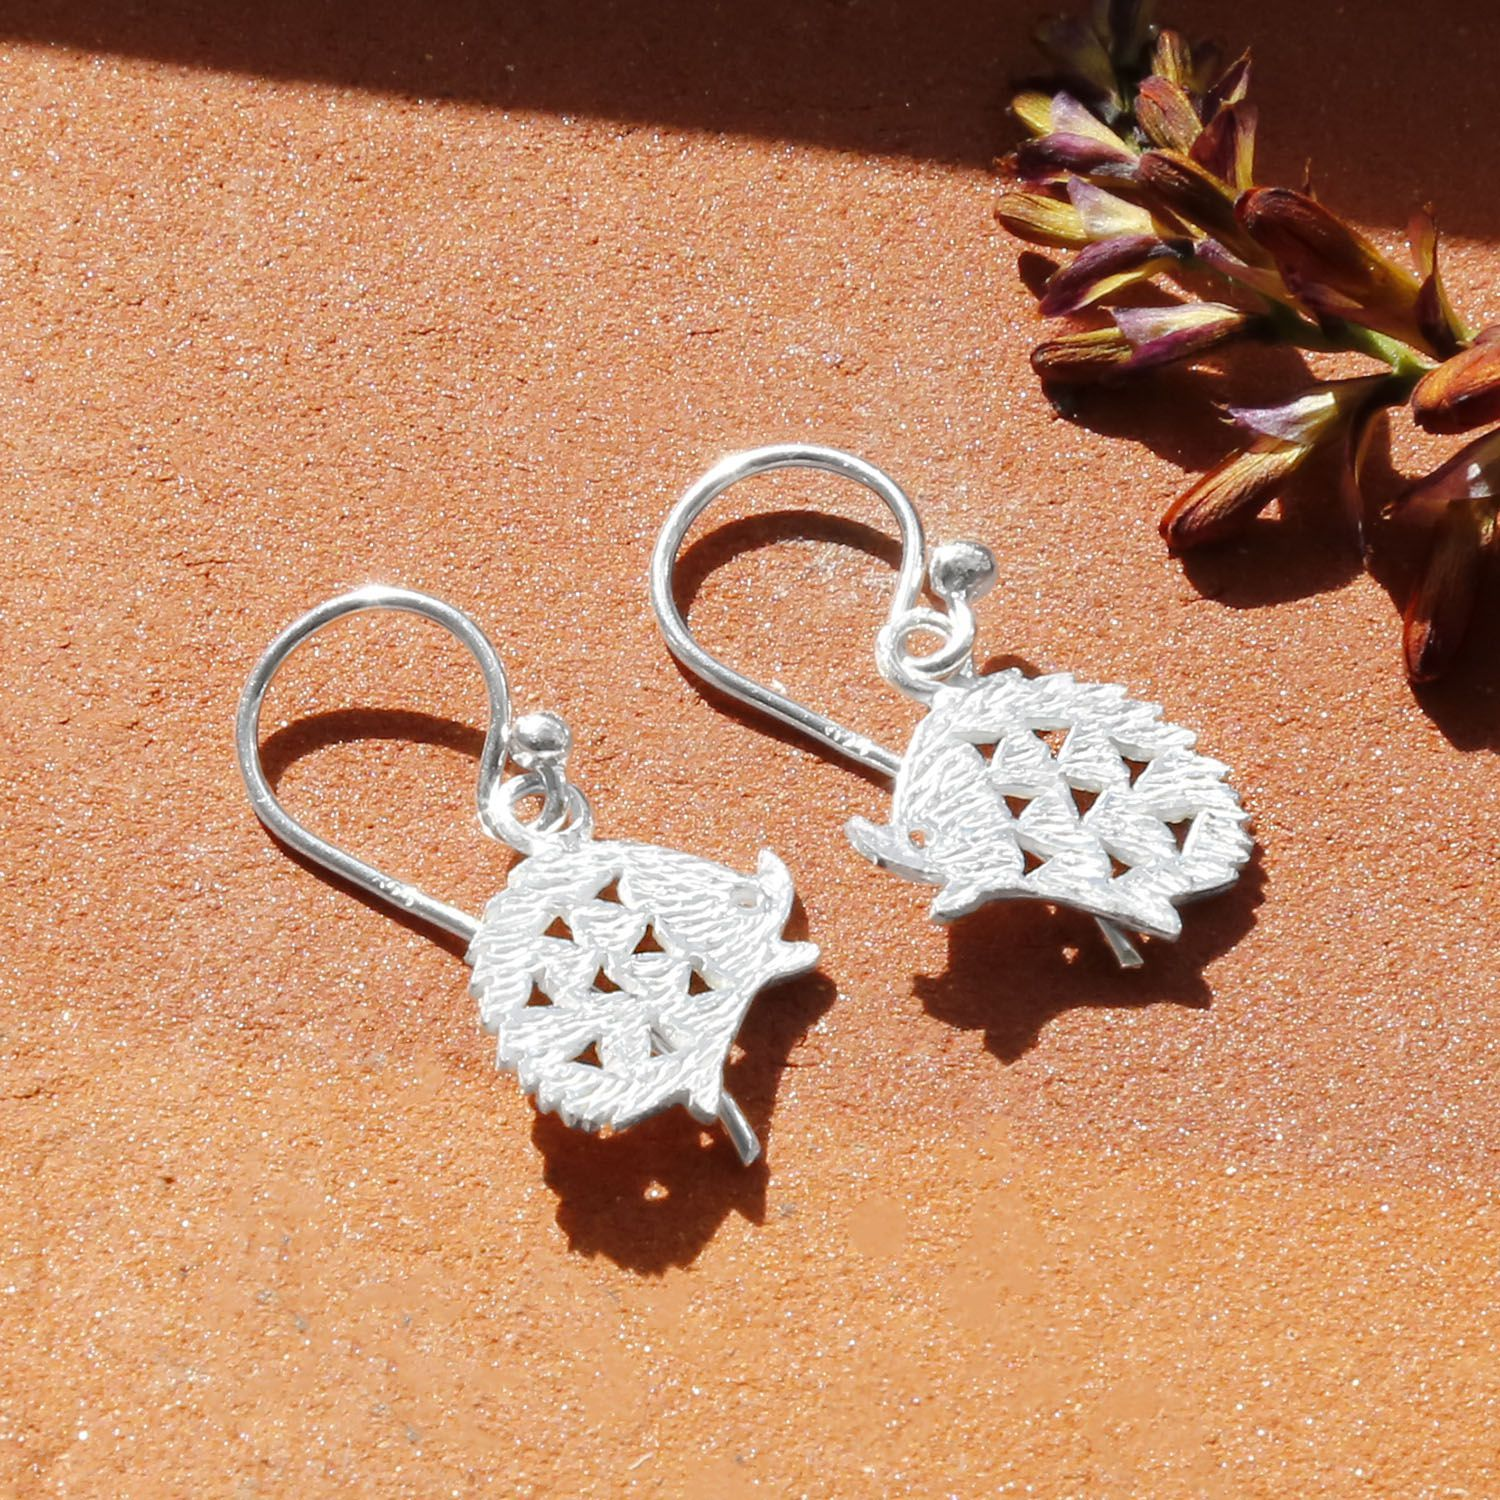 Silver Hedgehog Drop Earrings with a Brick Textured Background With Dried Flowers